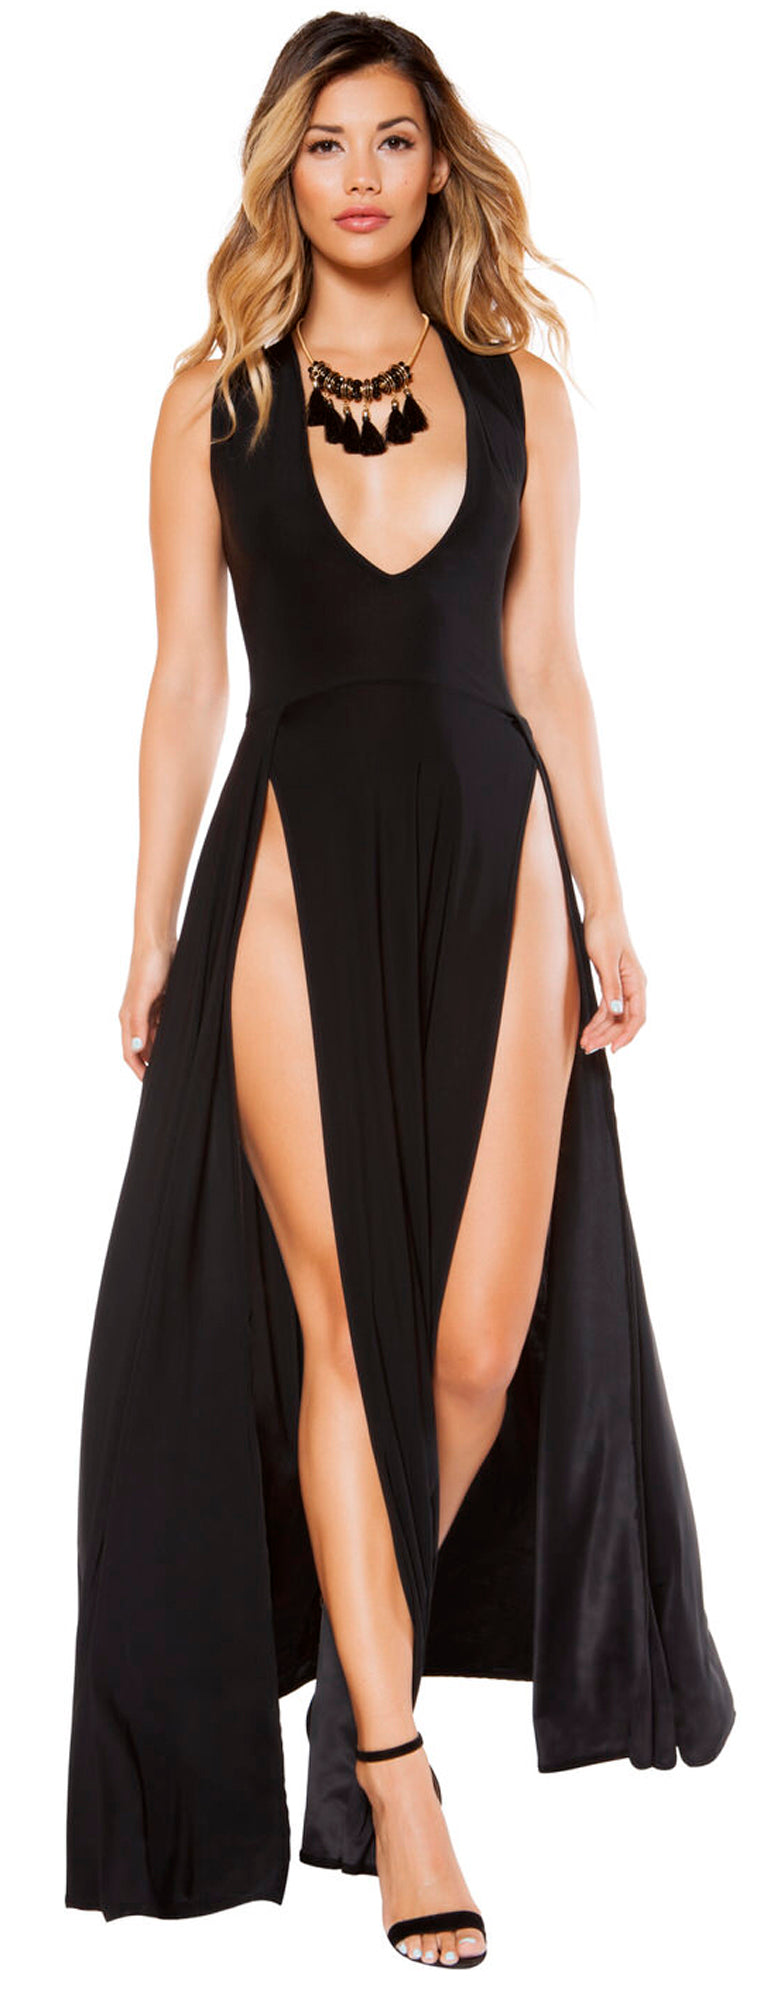 RM-3396 Maxi length black dress front